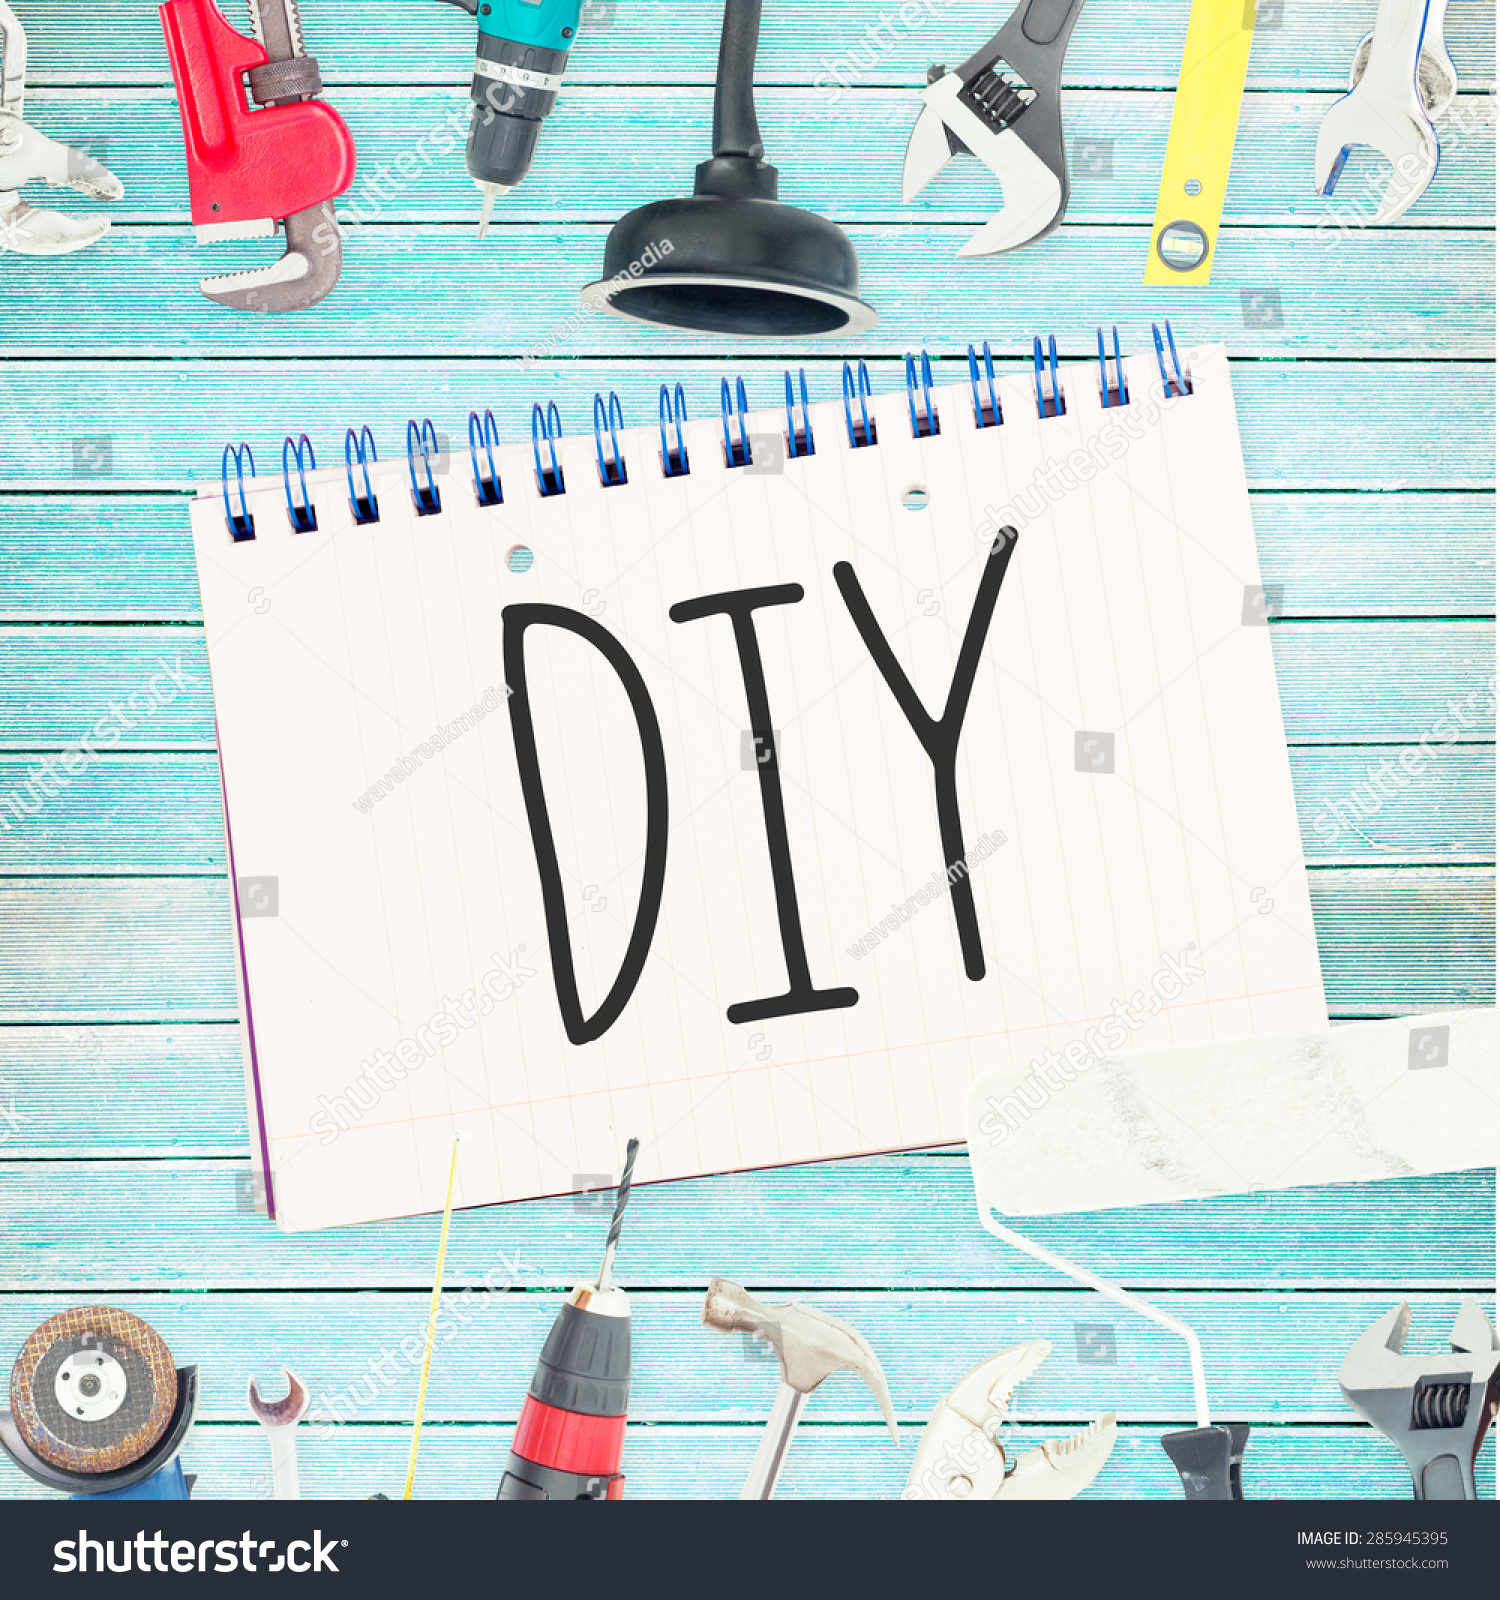 Word diy against tools notepad on stock illustration for Diy pictures